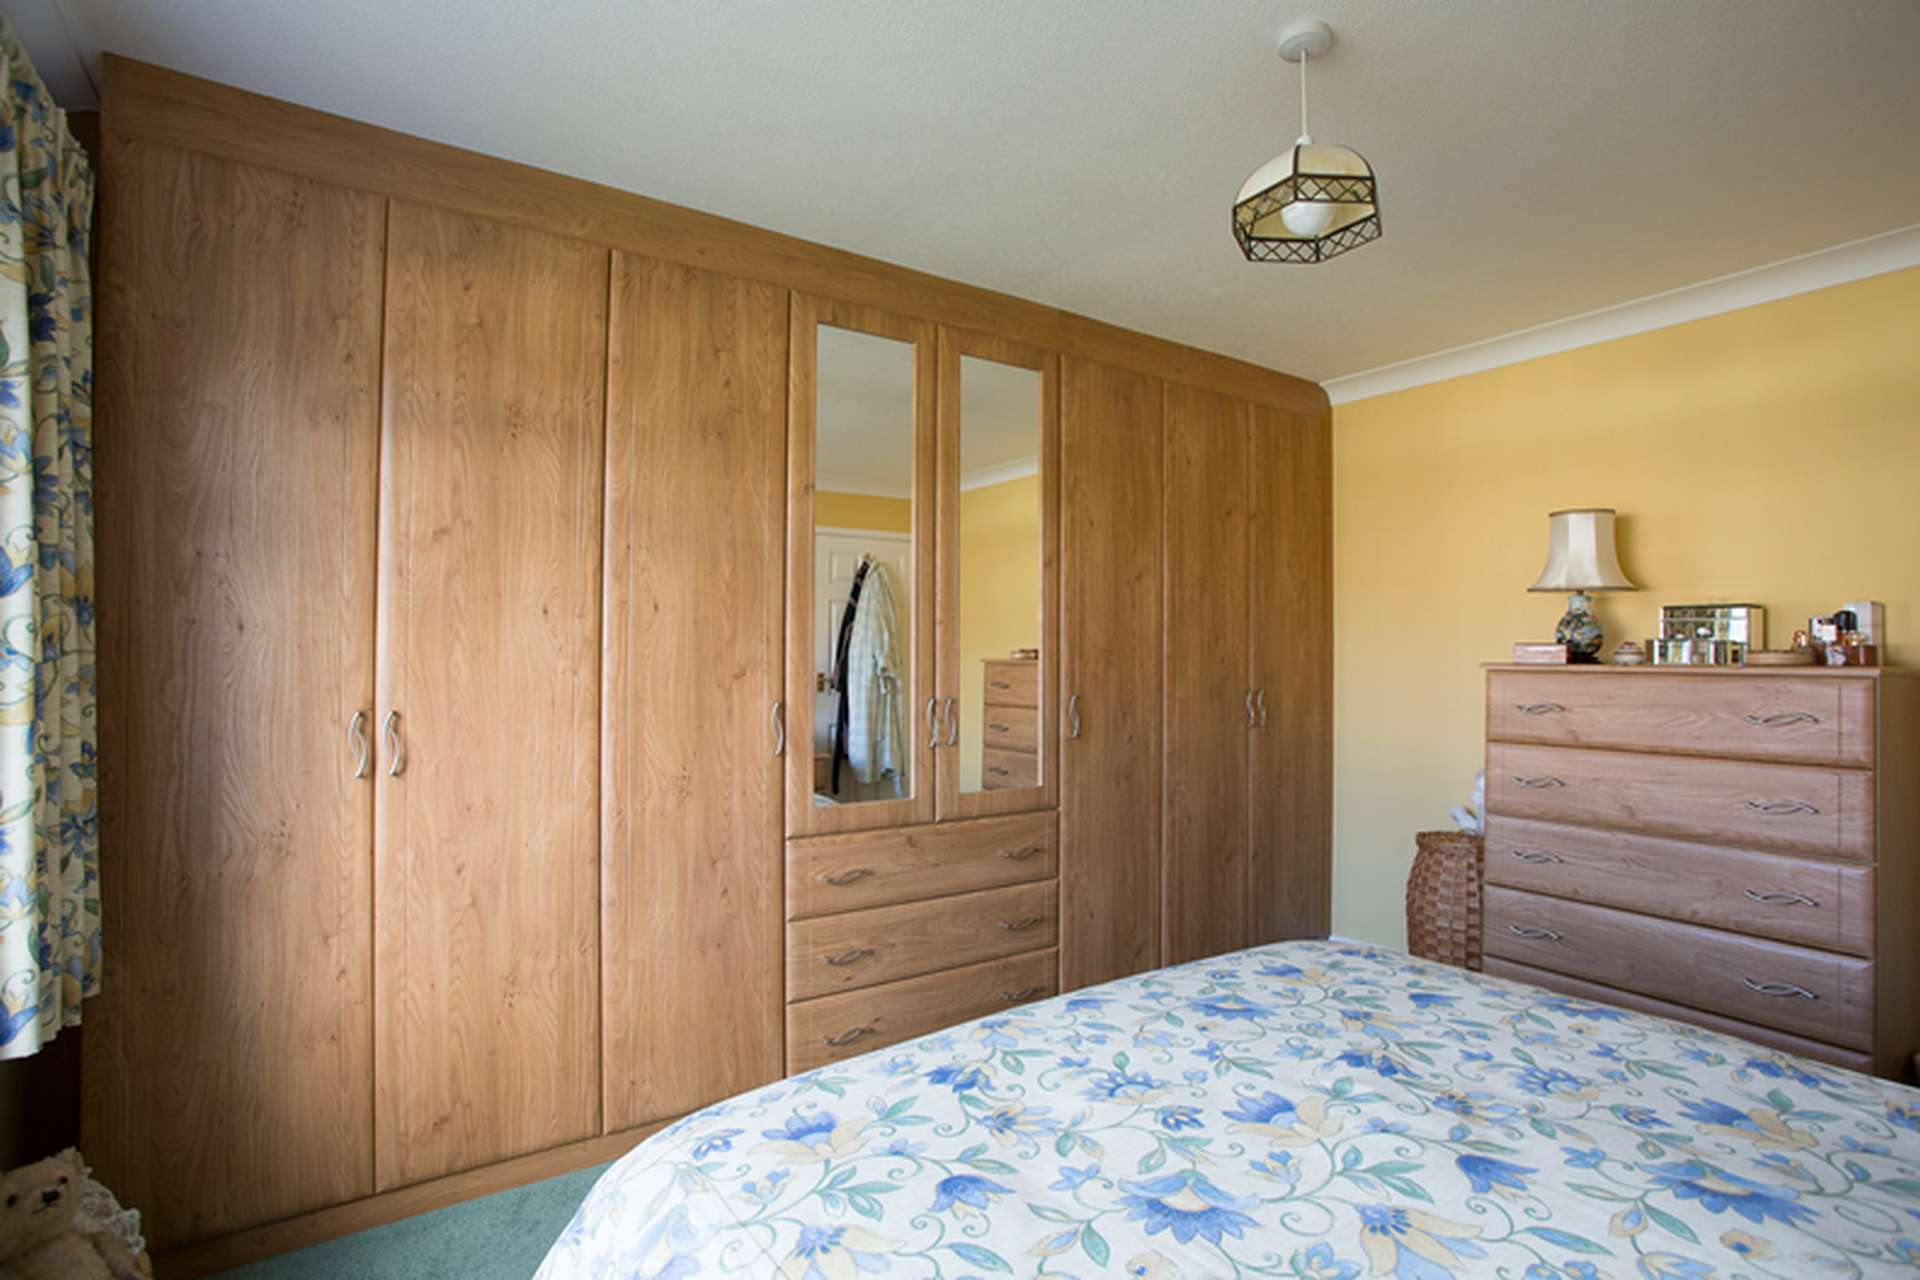 Wall To Wall Wardrobes Fitted Wardrobes Custom World Bedrooms